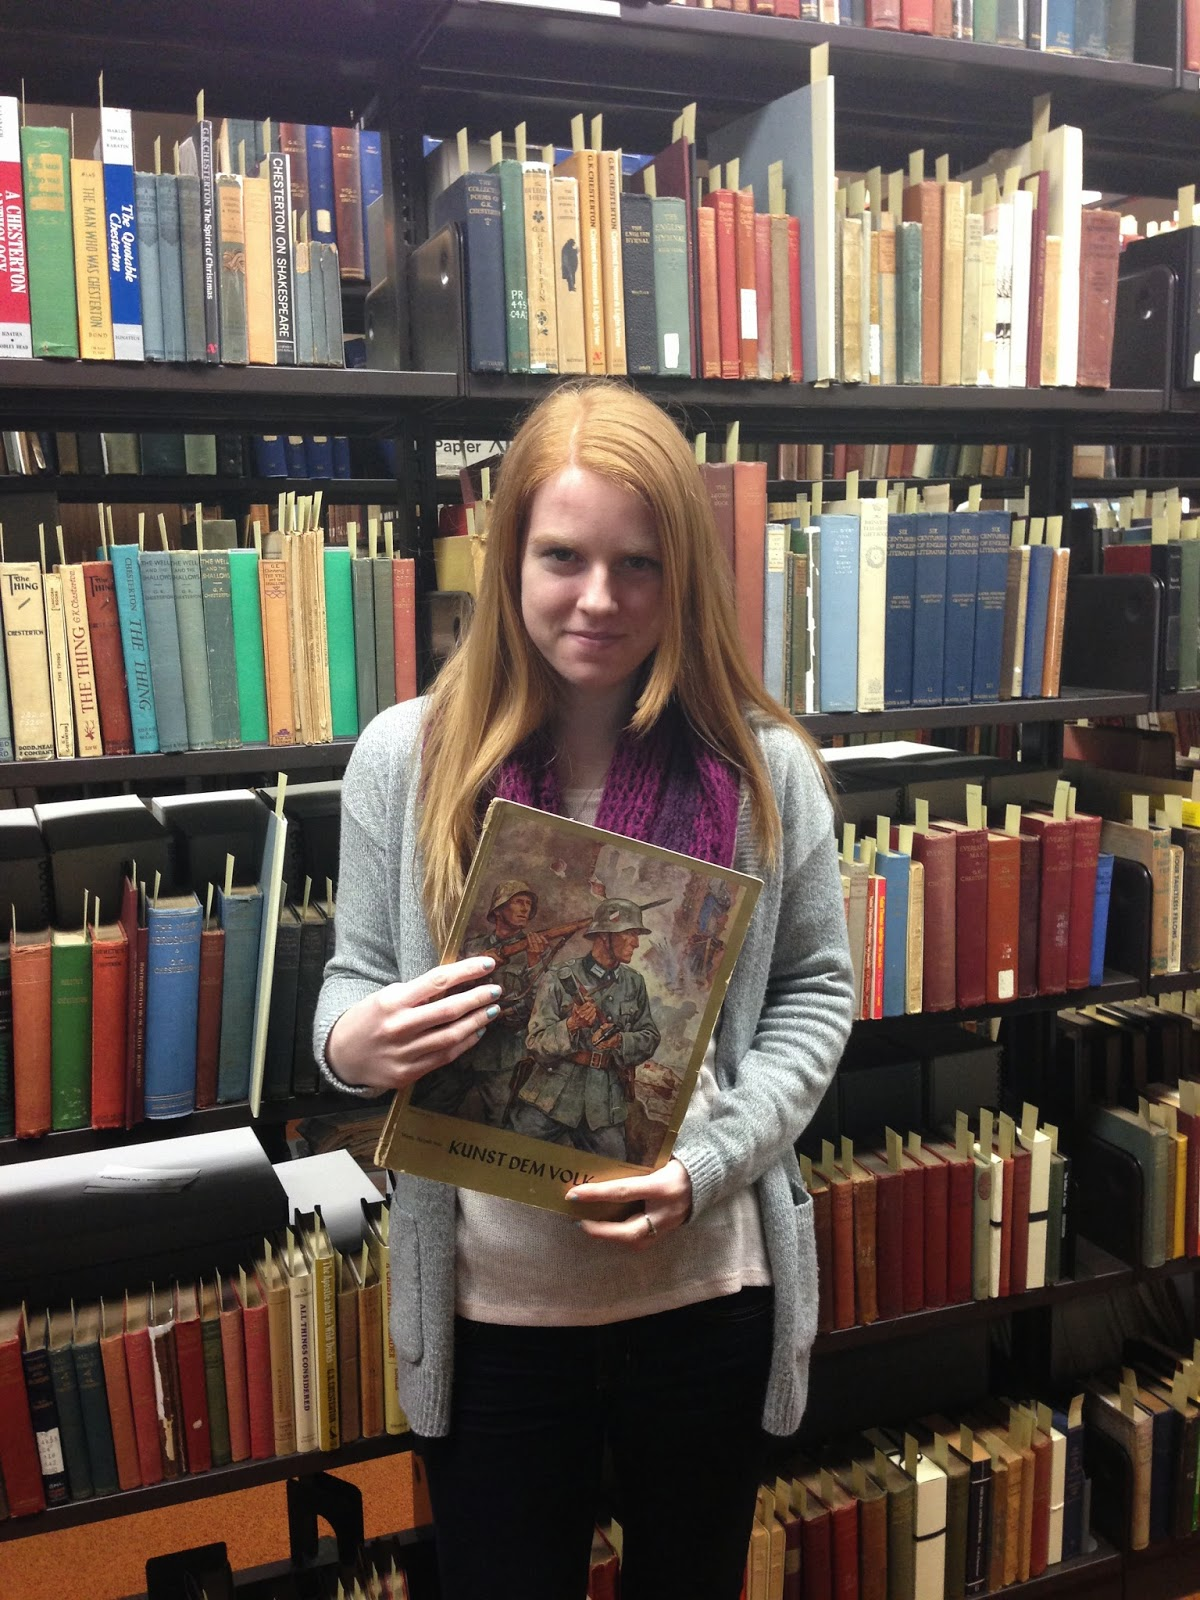 Janine in the Rare Books Room at the Kelly Library posing with an issue of Kunst Dem Volk.